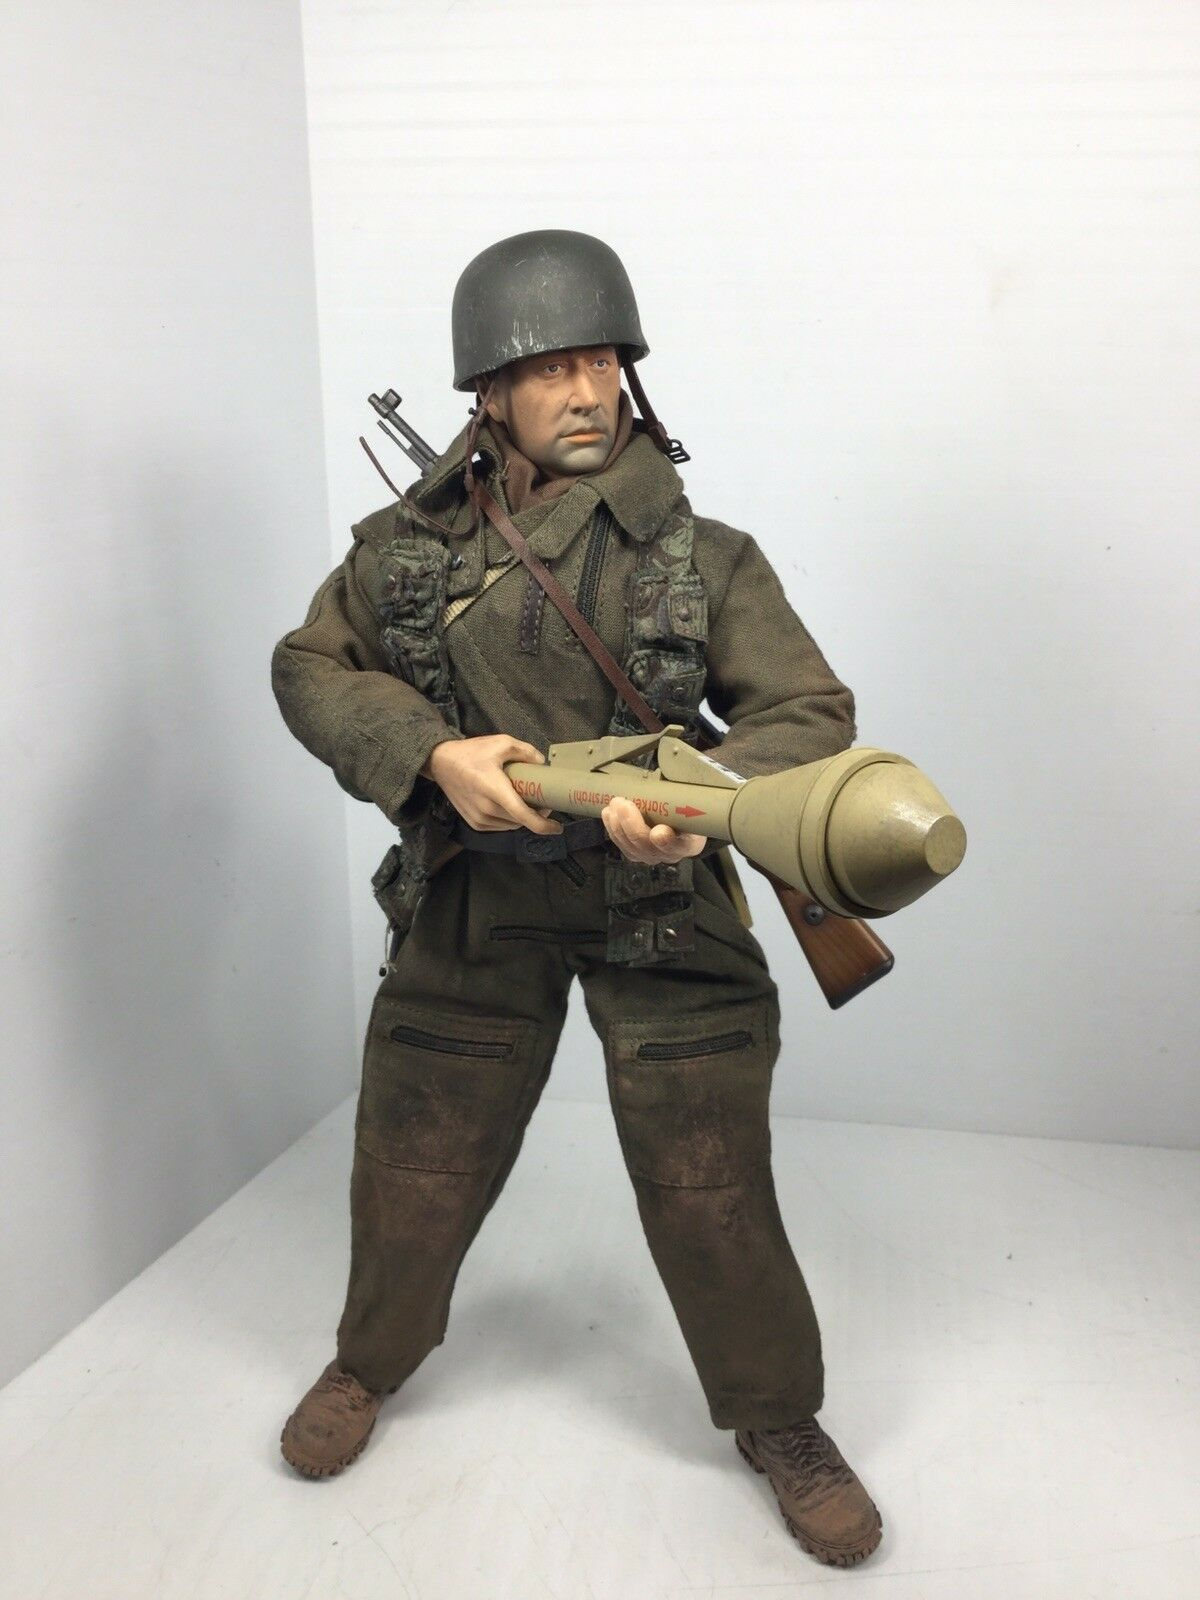 1 6 DRAGON GERMAN LUFTWAFFE 9TH FJ DIV PARATROOPER K-98 PANZERFAUST WW2 DID BBI